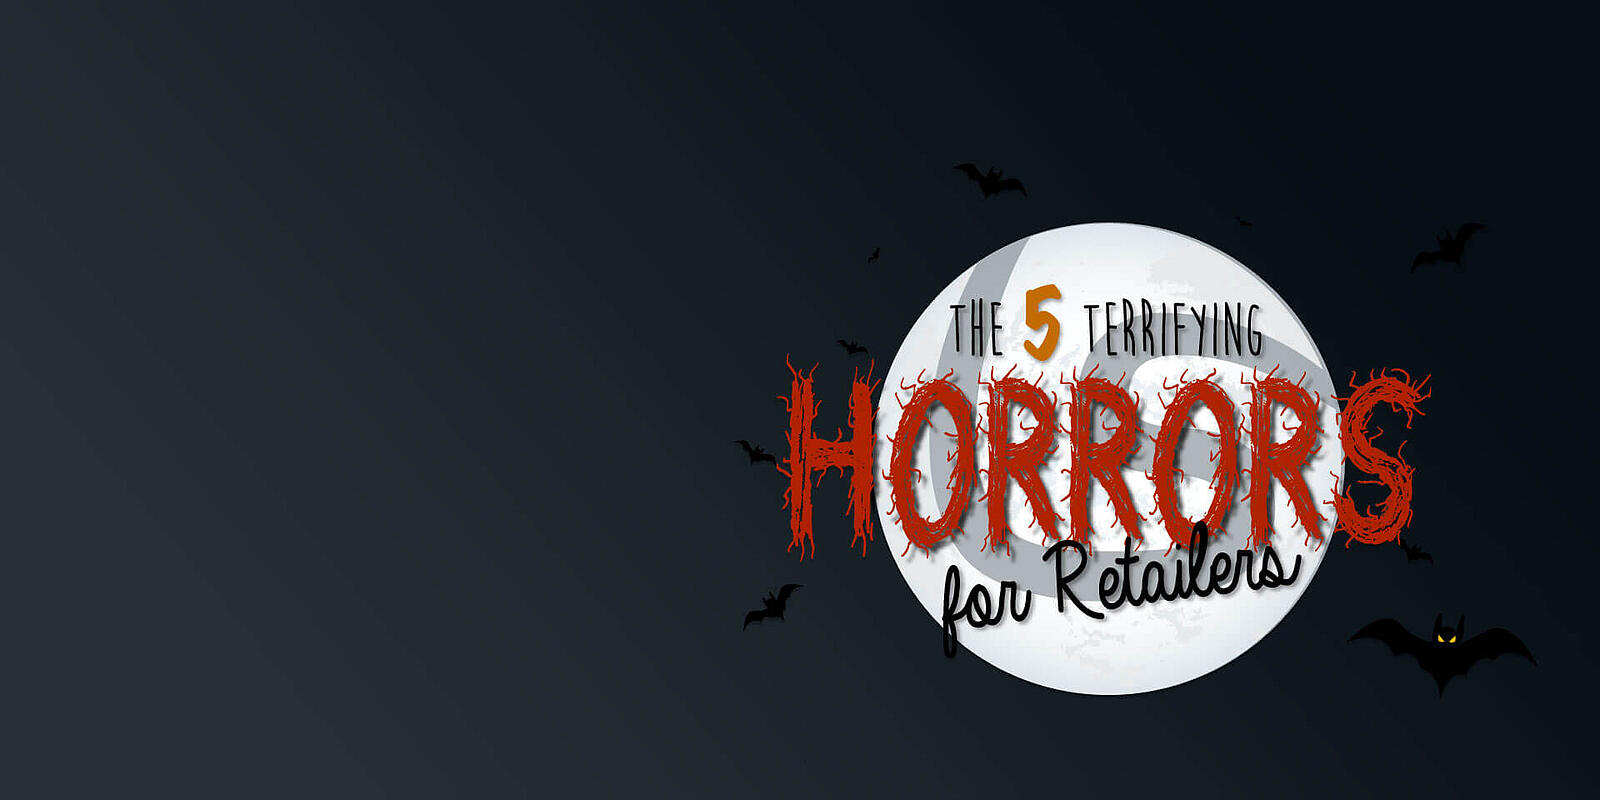 The 5 terrifying horrors for retailers [infographic]